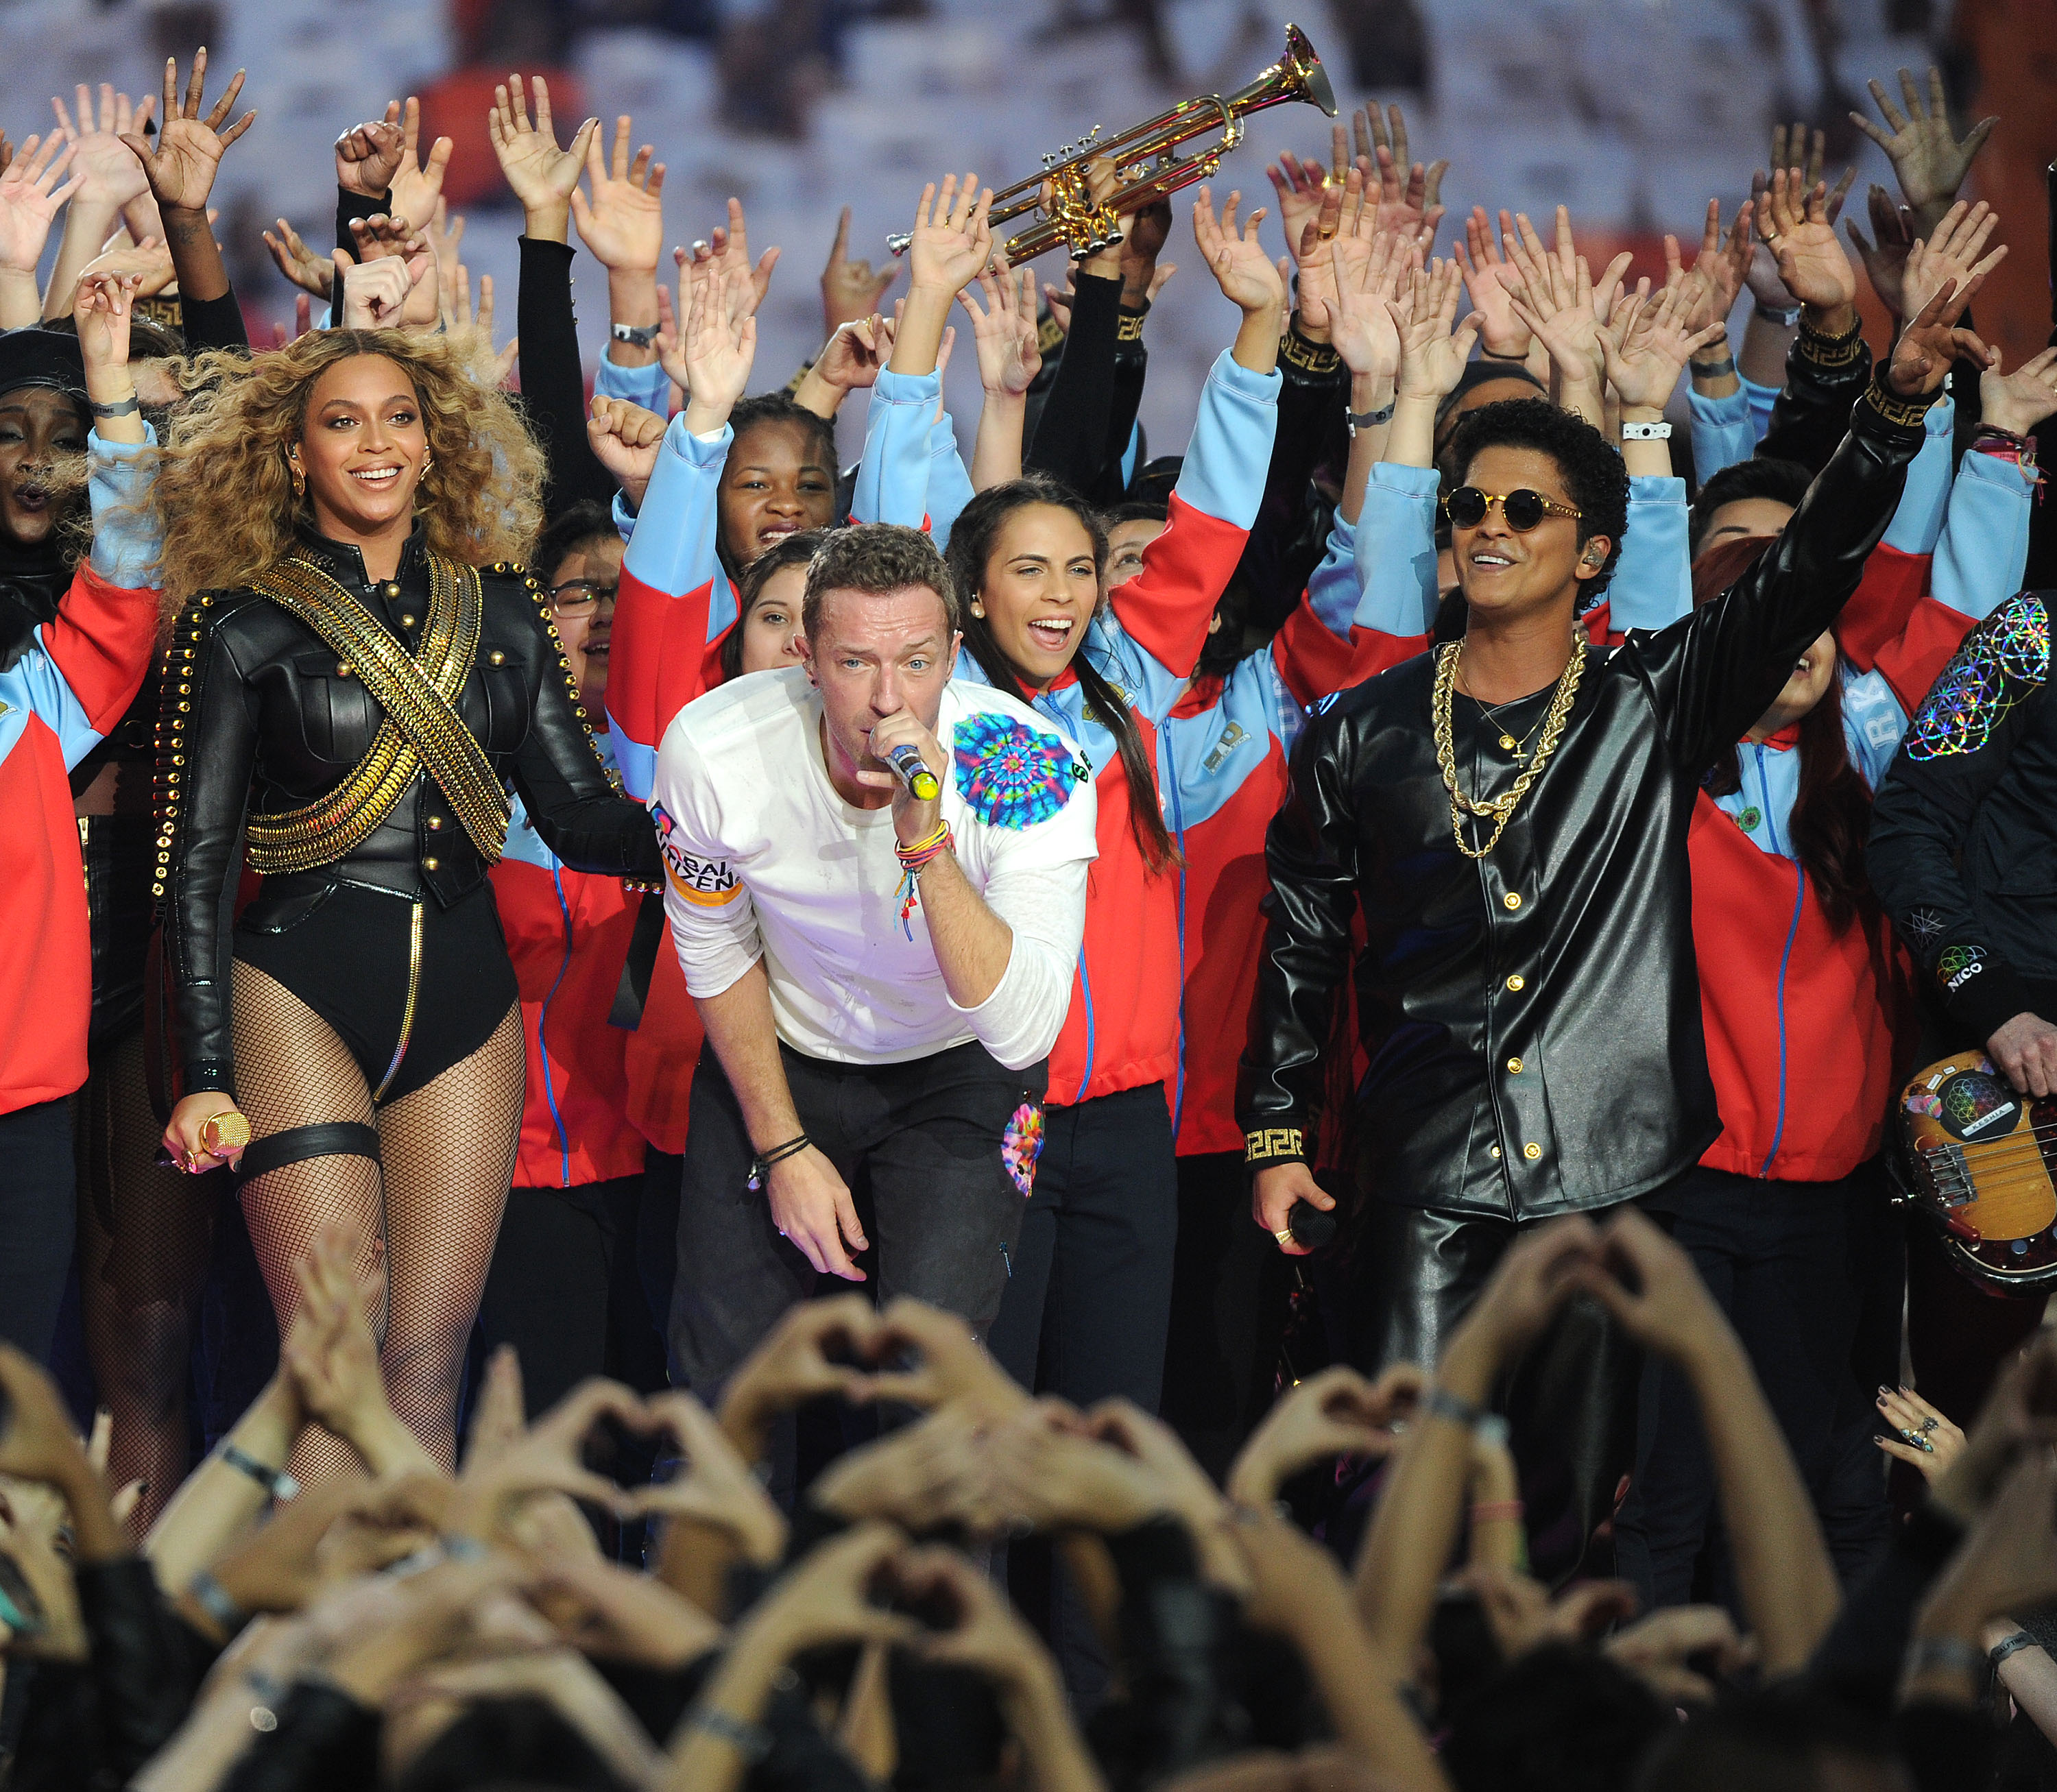 Beyonce Knowles, Chris Martin, Bruno Mars